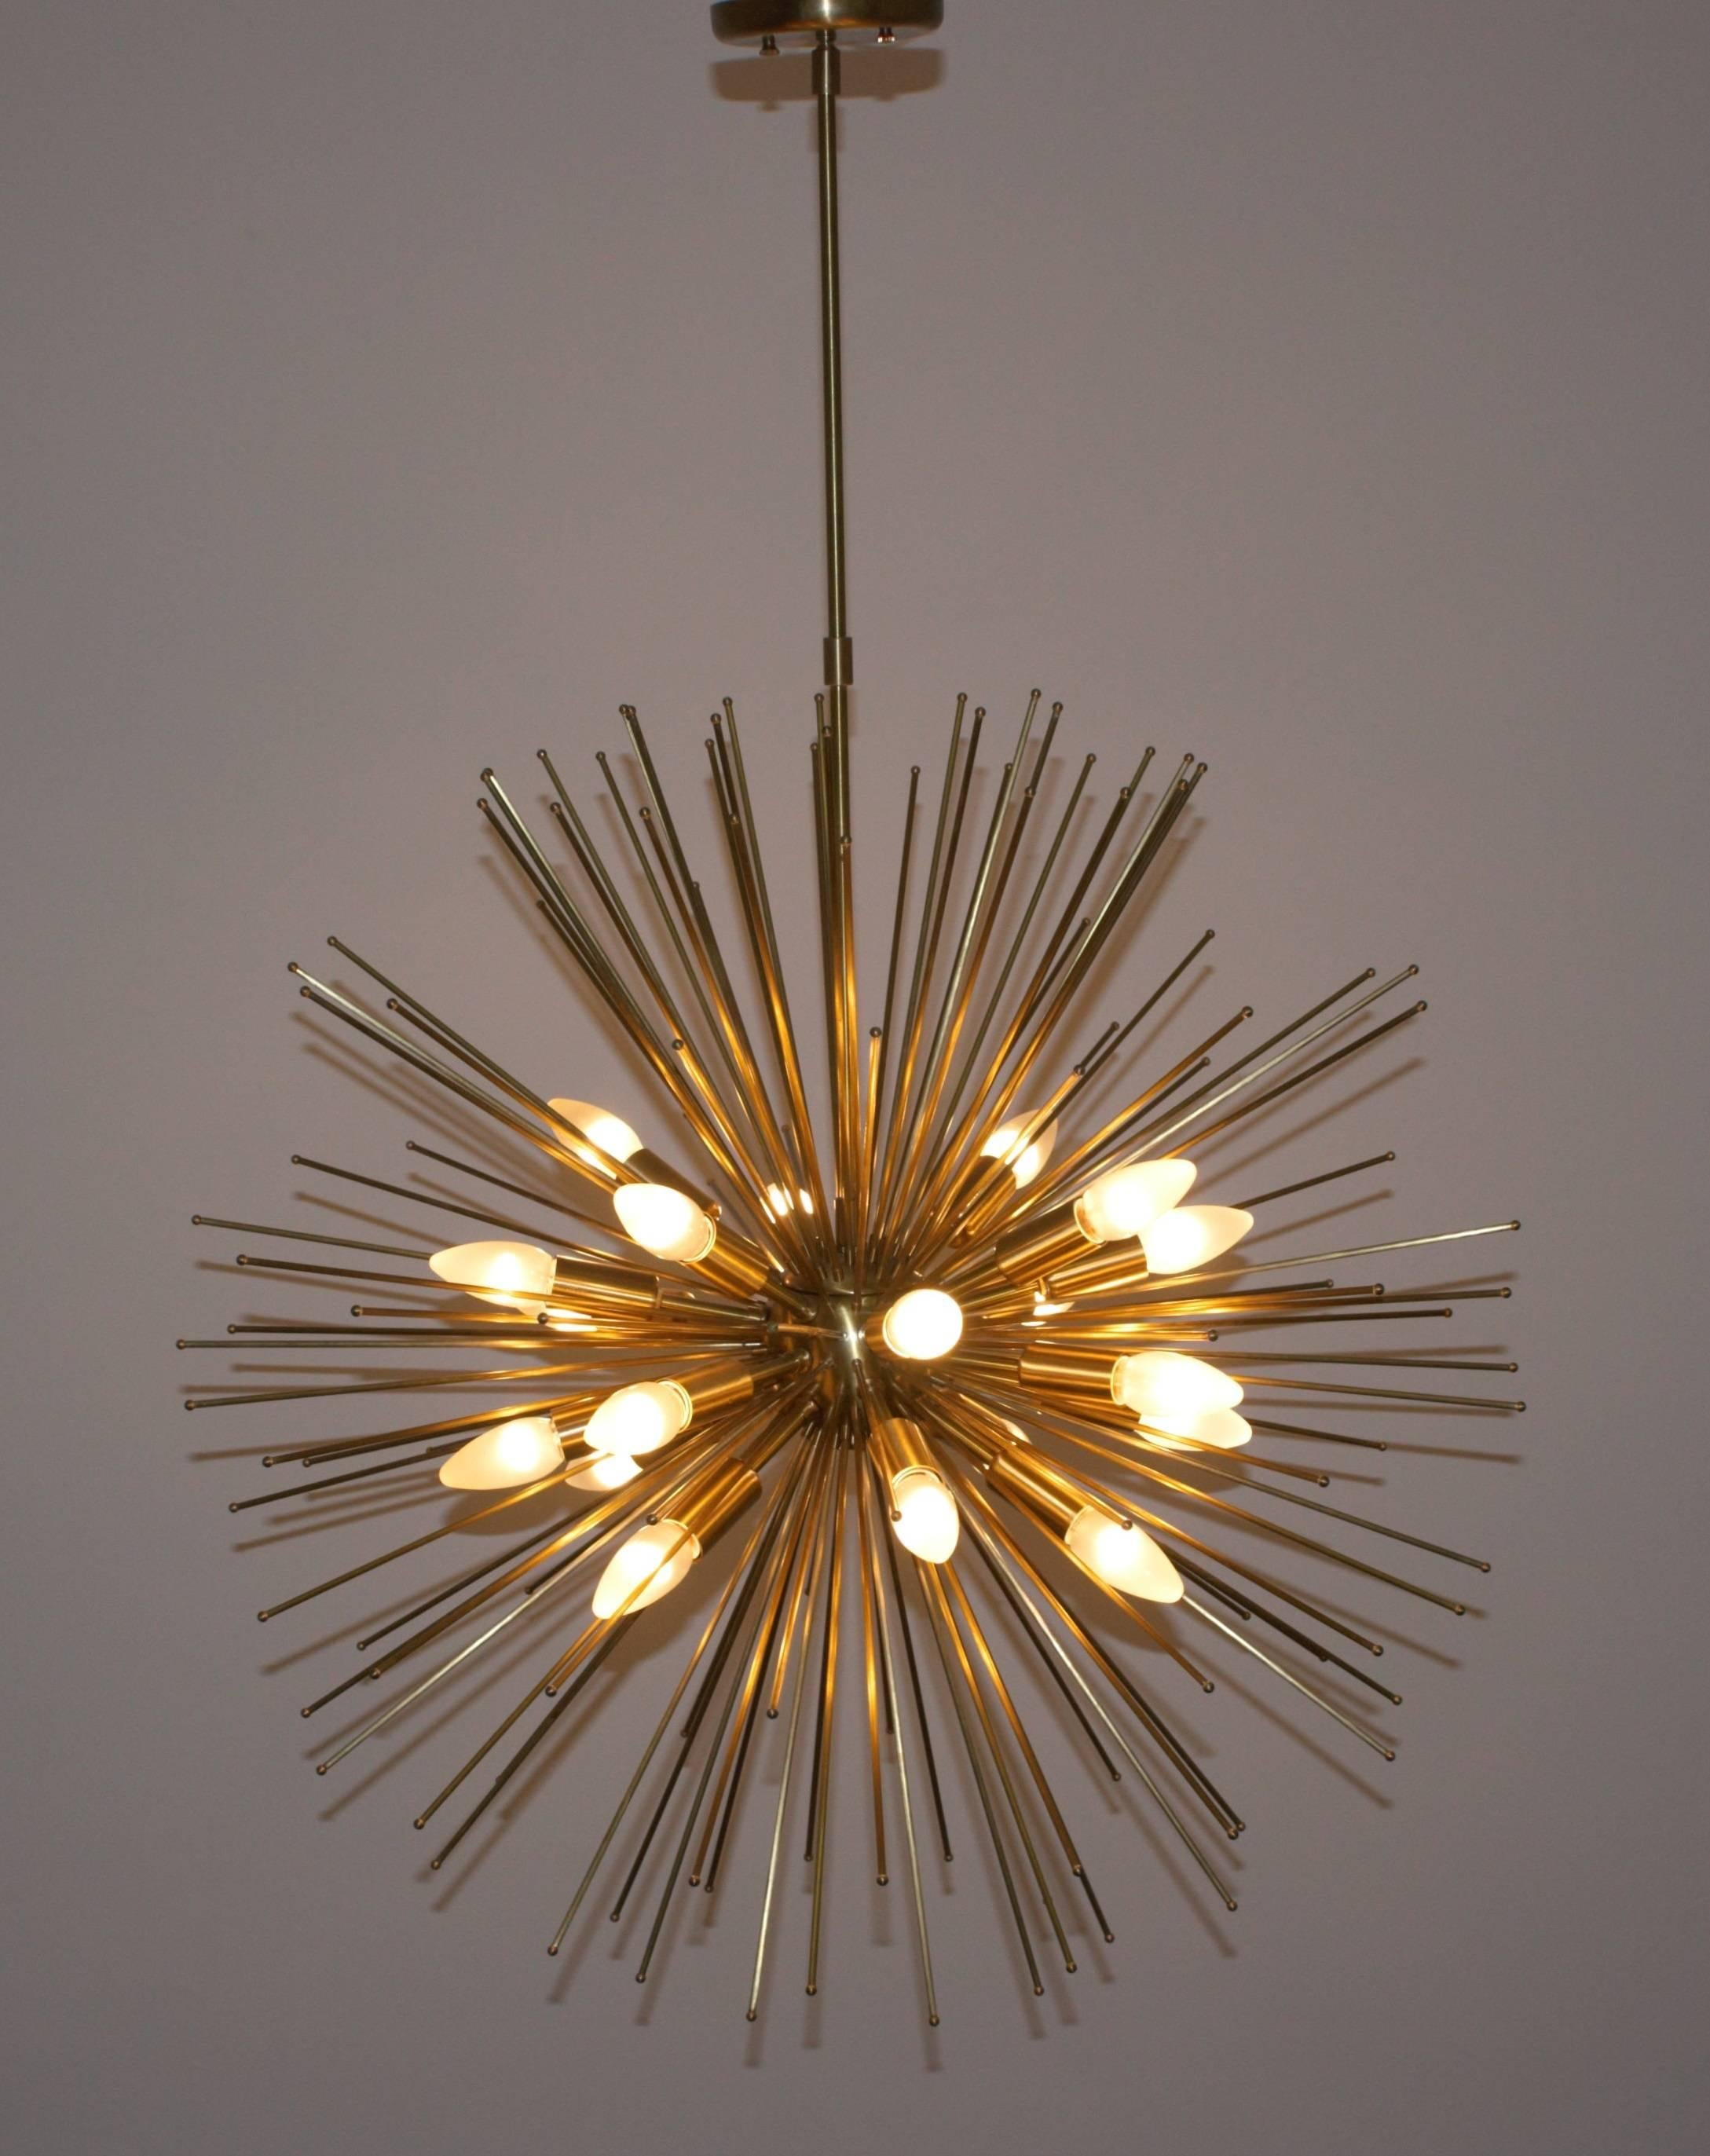 chandelier luxury urchin chandeliers lights italian rectangular vetrina nella lighting designer